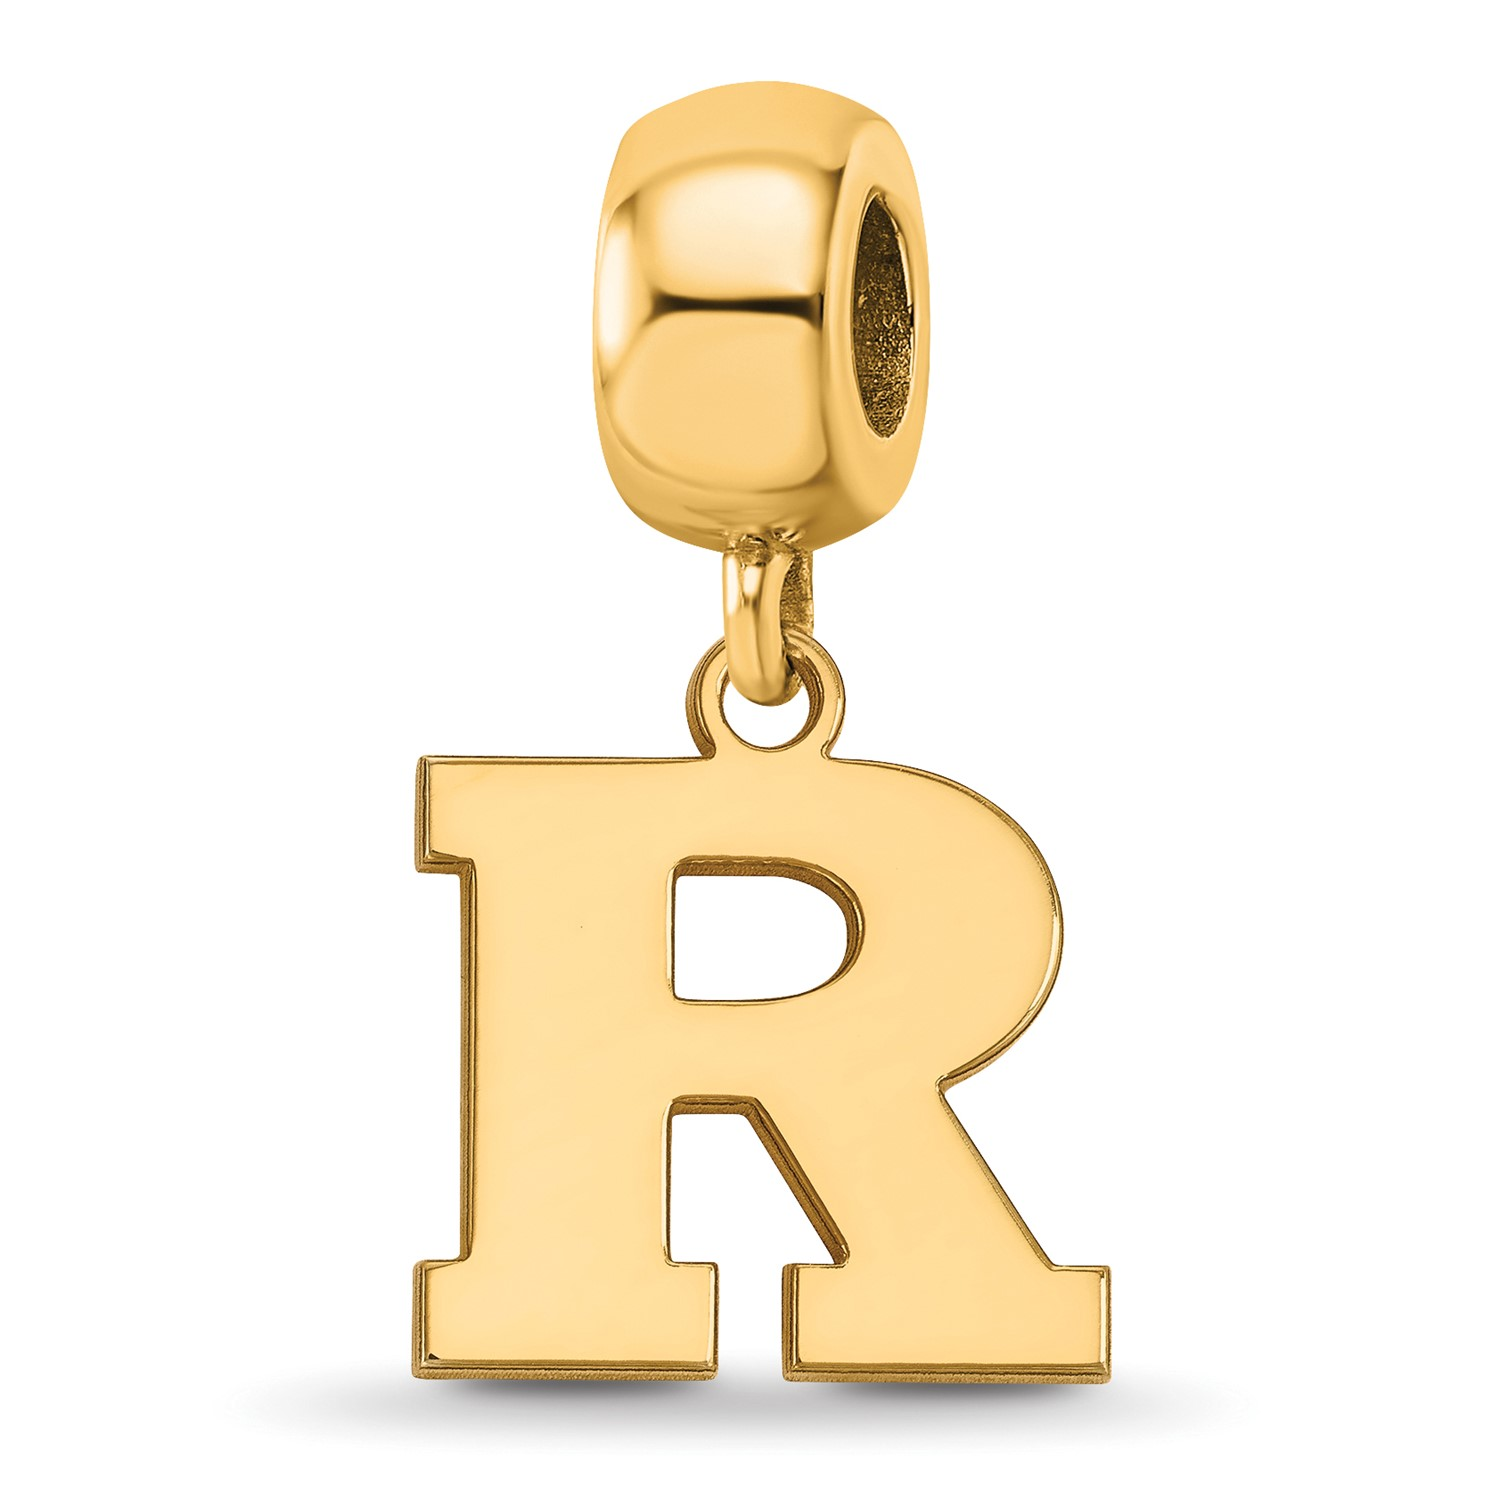 eb387dcc3c06a Stg Silver w  Yellow Gold-Plated Rutgers University (RU) Small ...